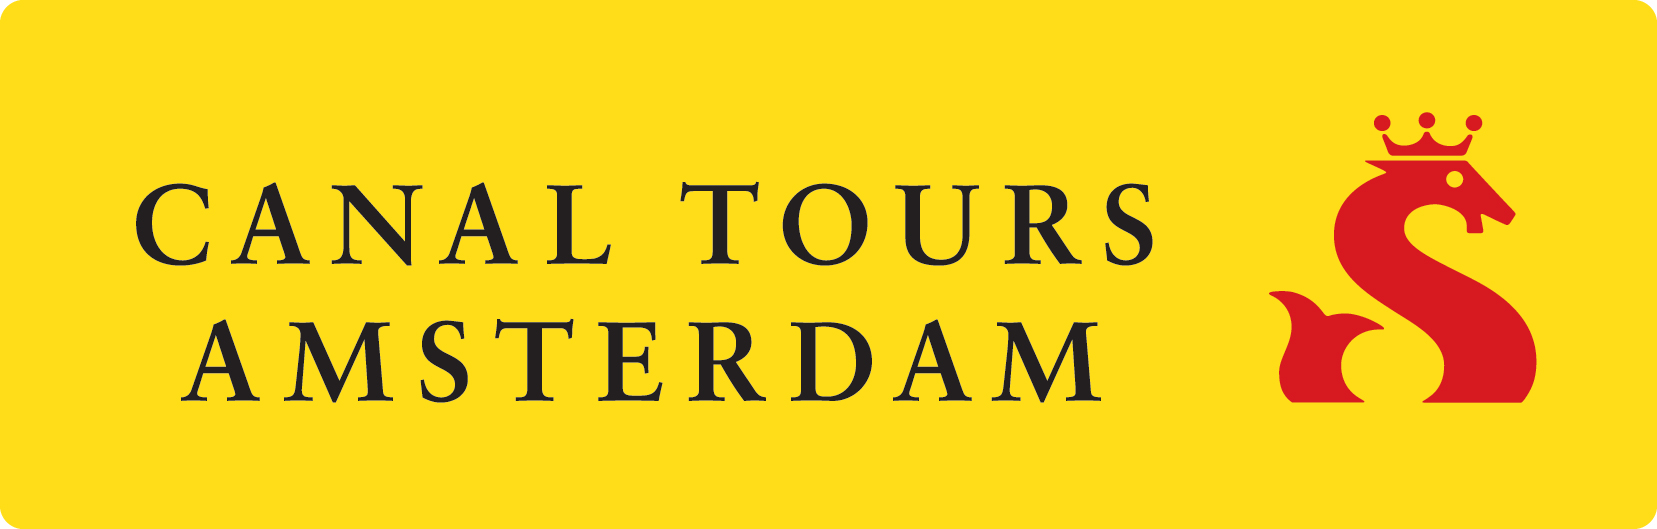 Canal Tours Amsterdam logo